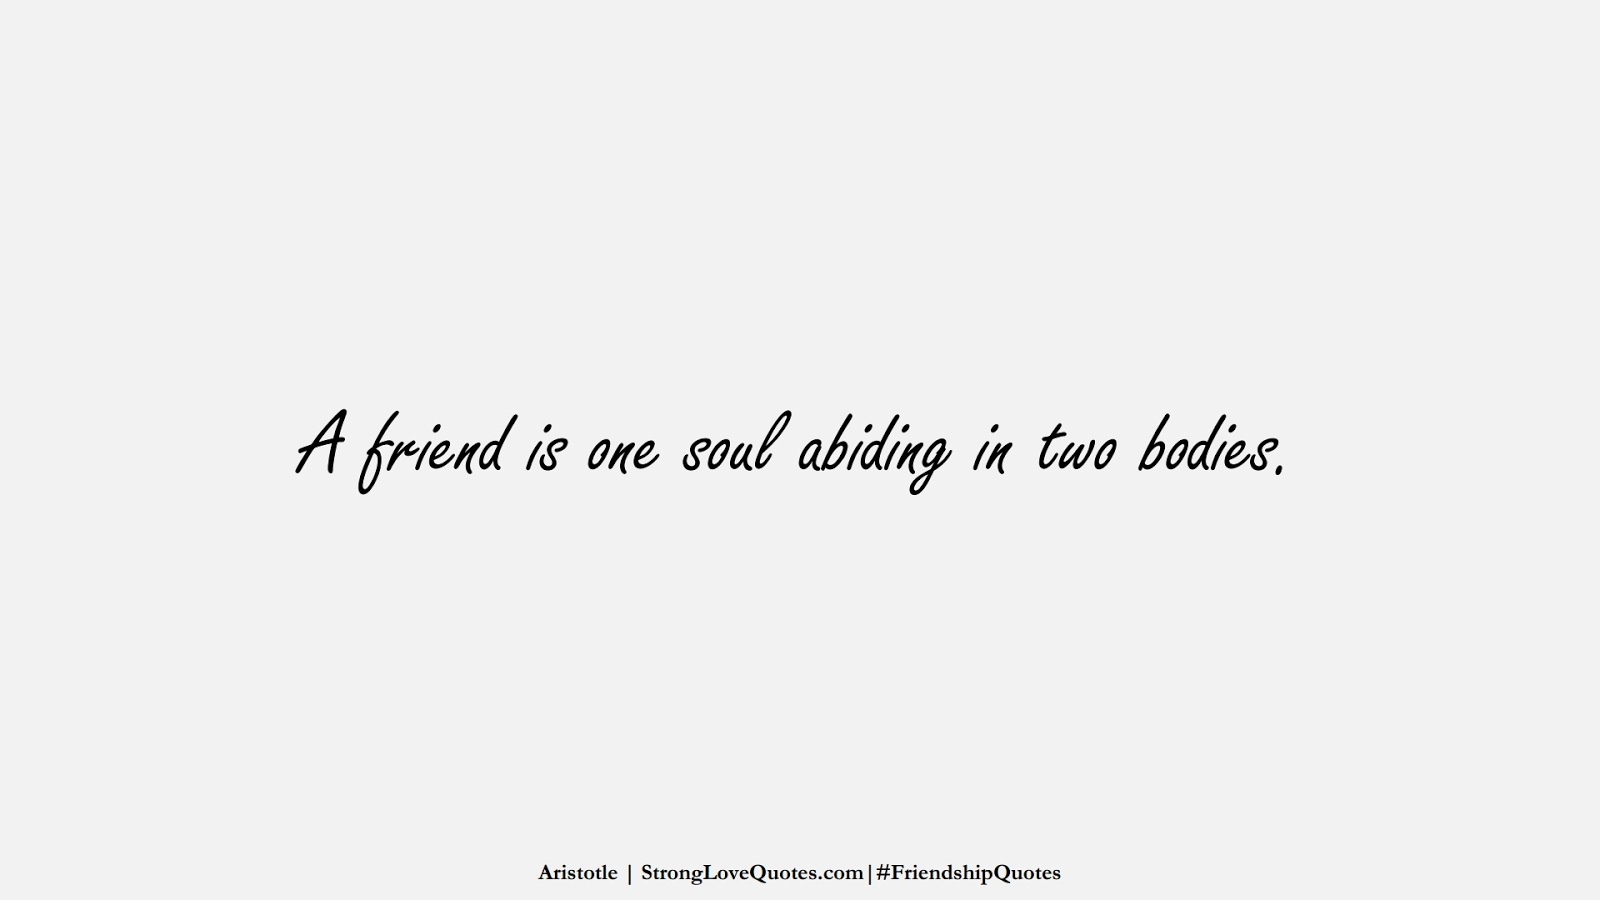 A friend is one soul abiding in two bodies. (Aristotle);  #FriendshipQuotes